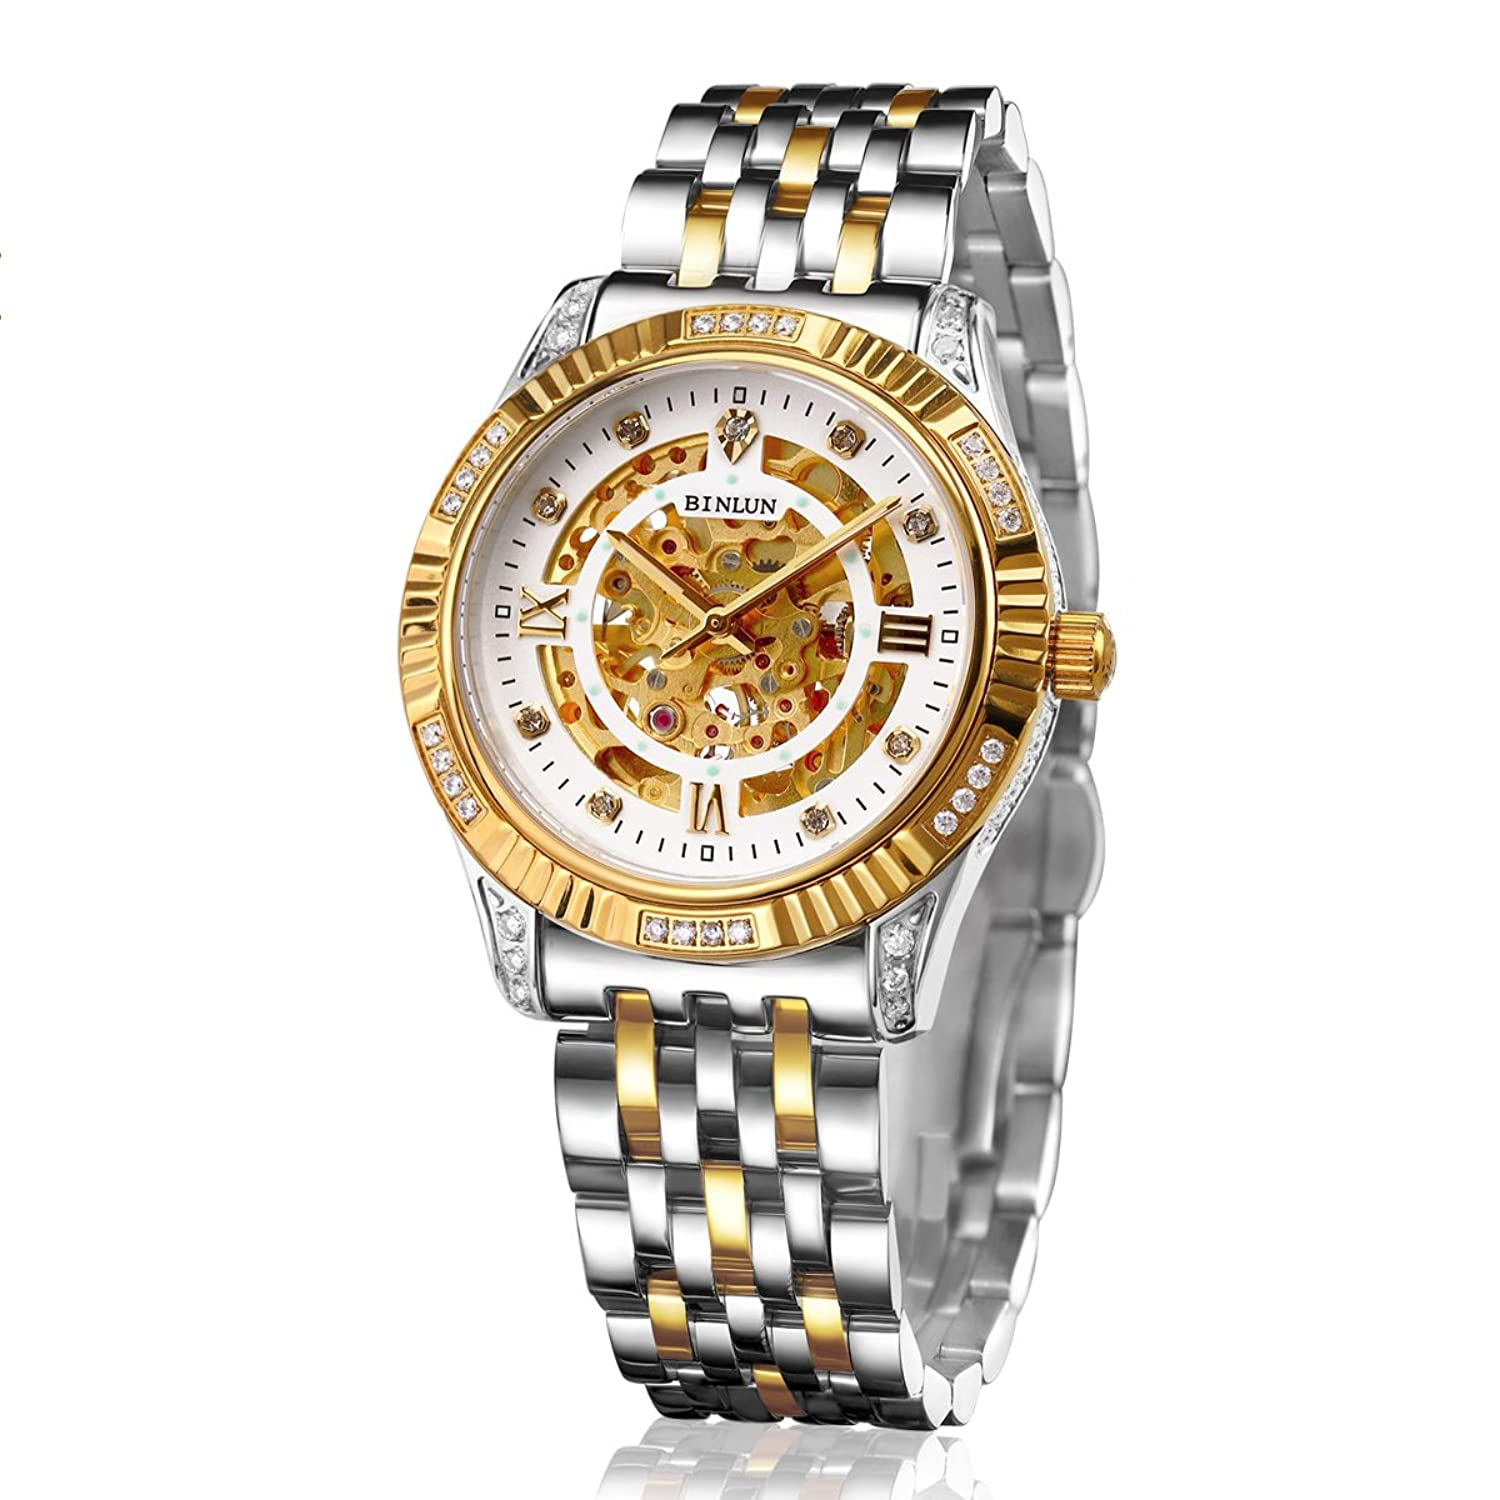 BNLUN Gents Two Tone 18k Gold Plated Watch Diamond Visible Gear Skeleton Automatic Mechanic Watch